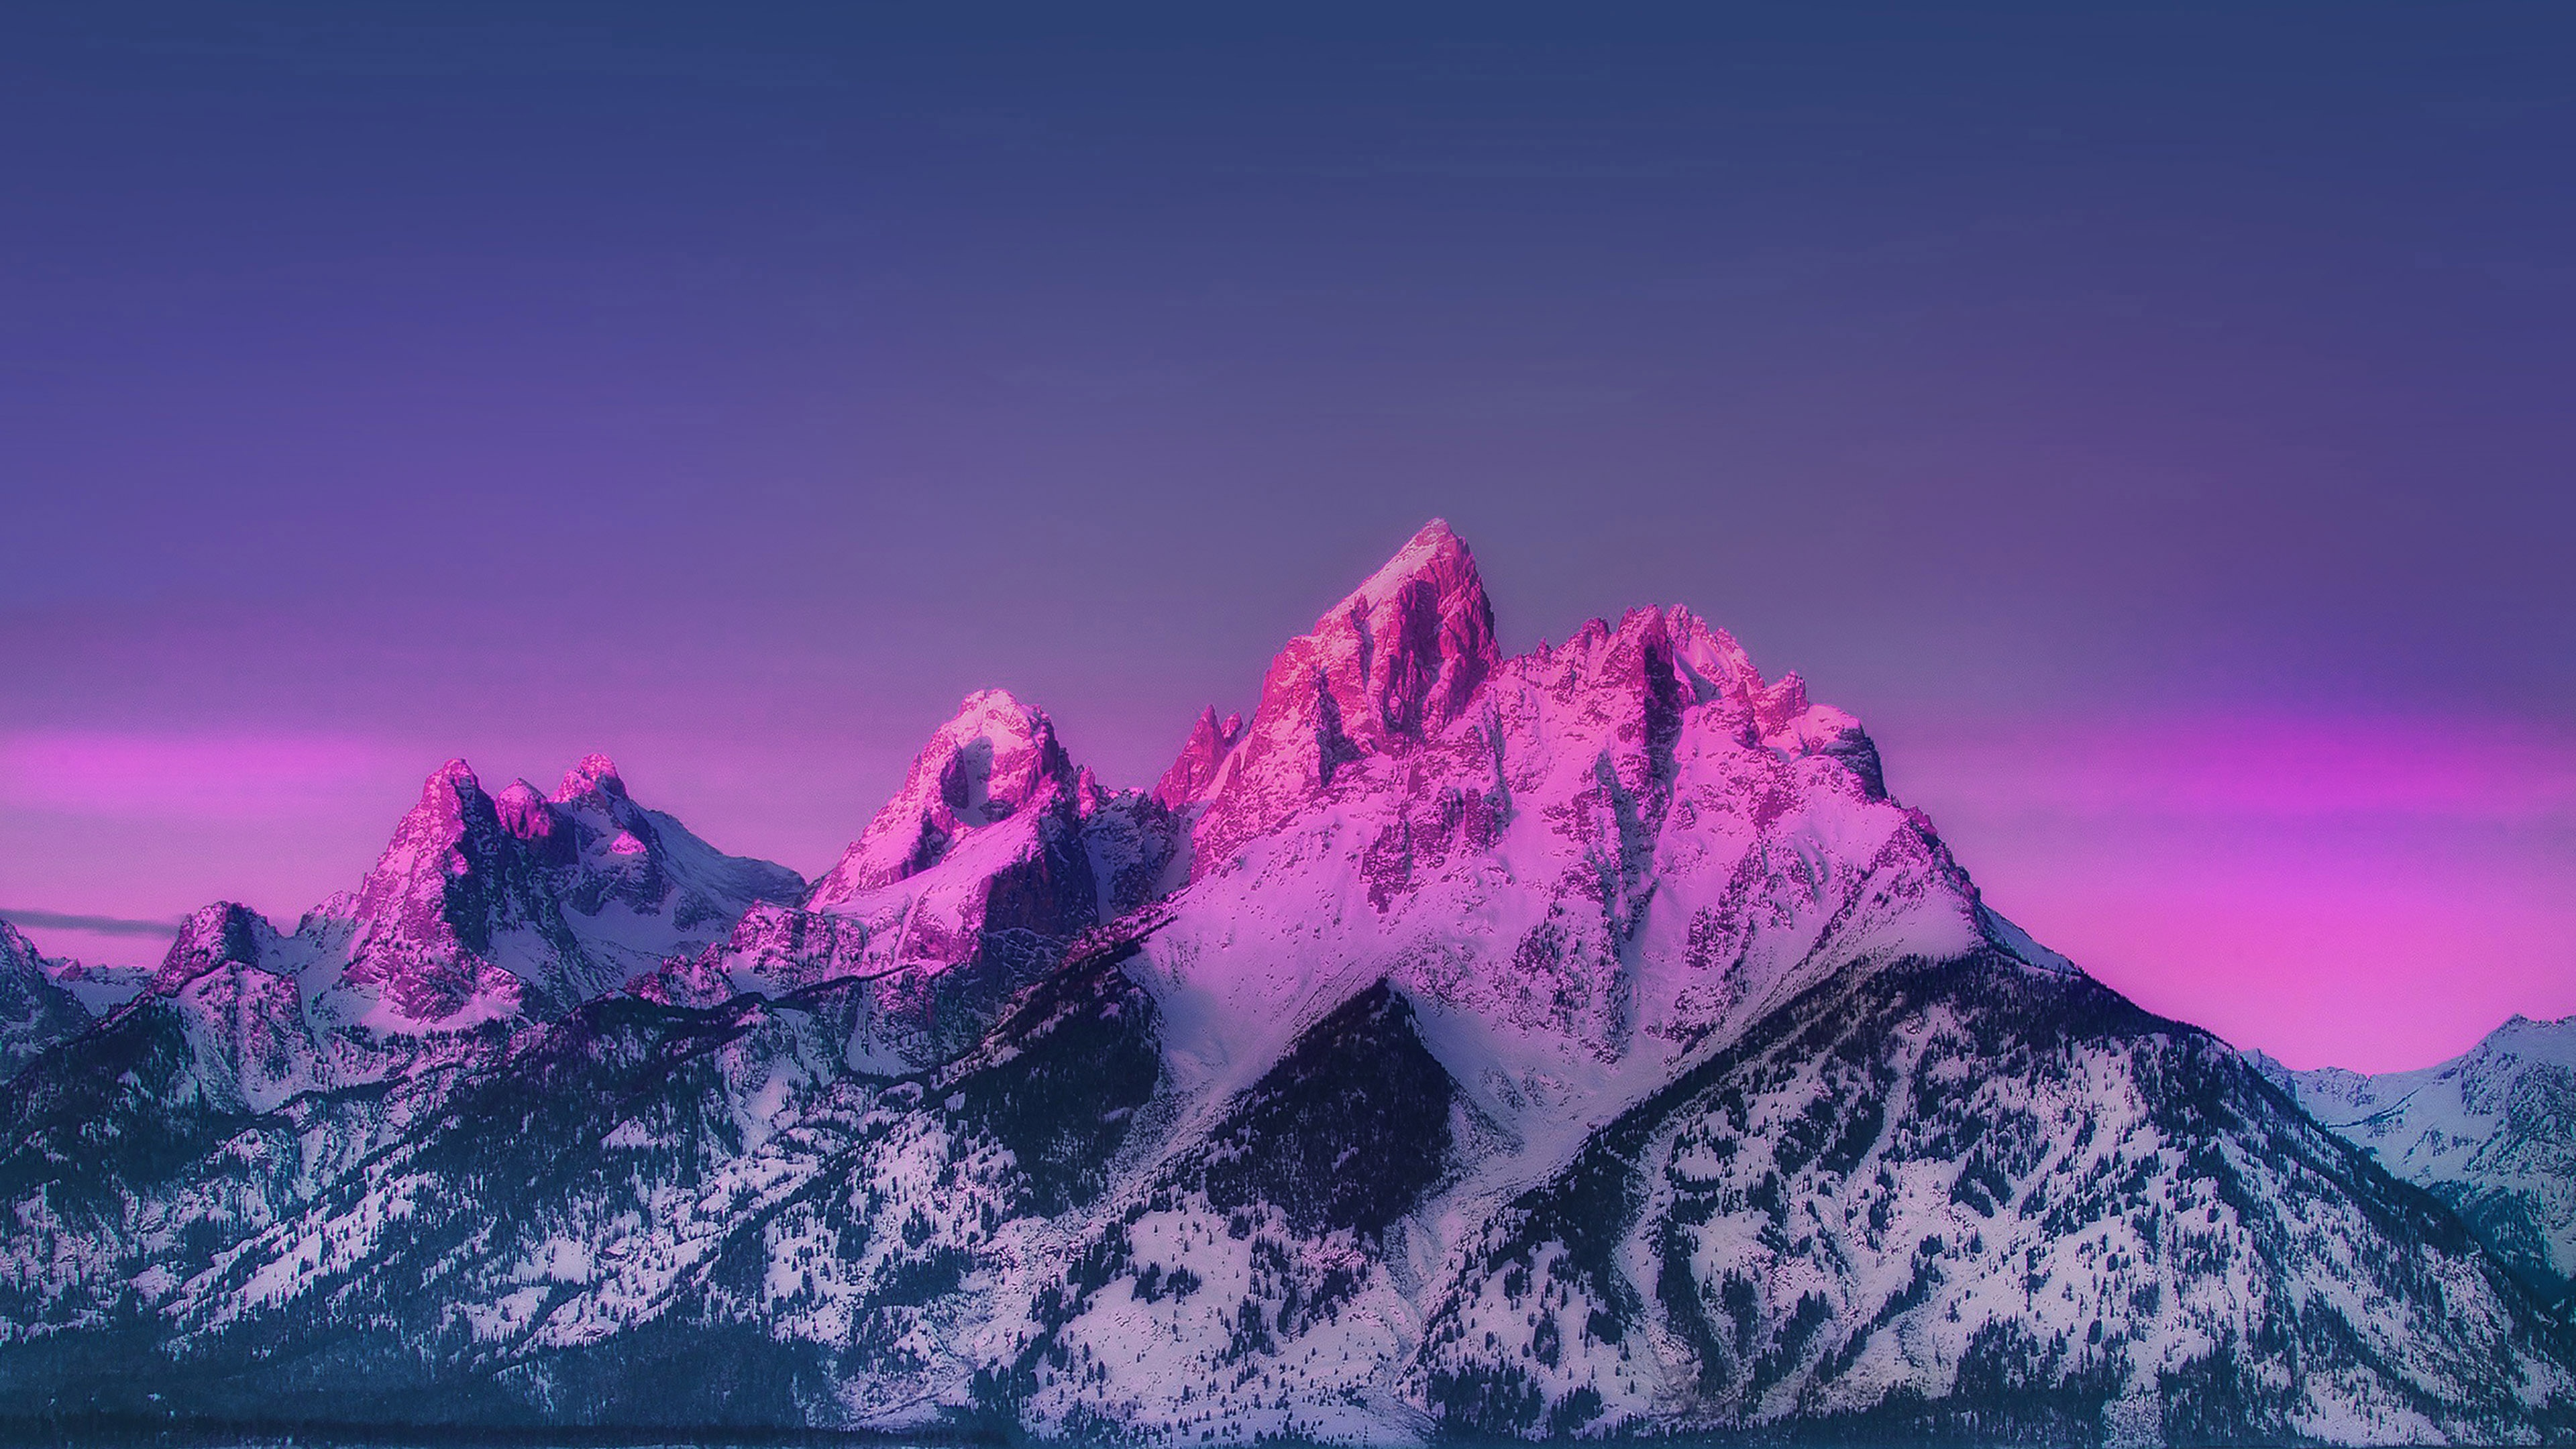 Pepe The Frog Cute Wallpaper Pink Snowed Mountains Wallpaper Nature And Landscape